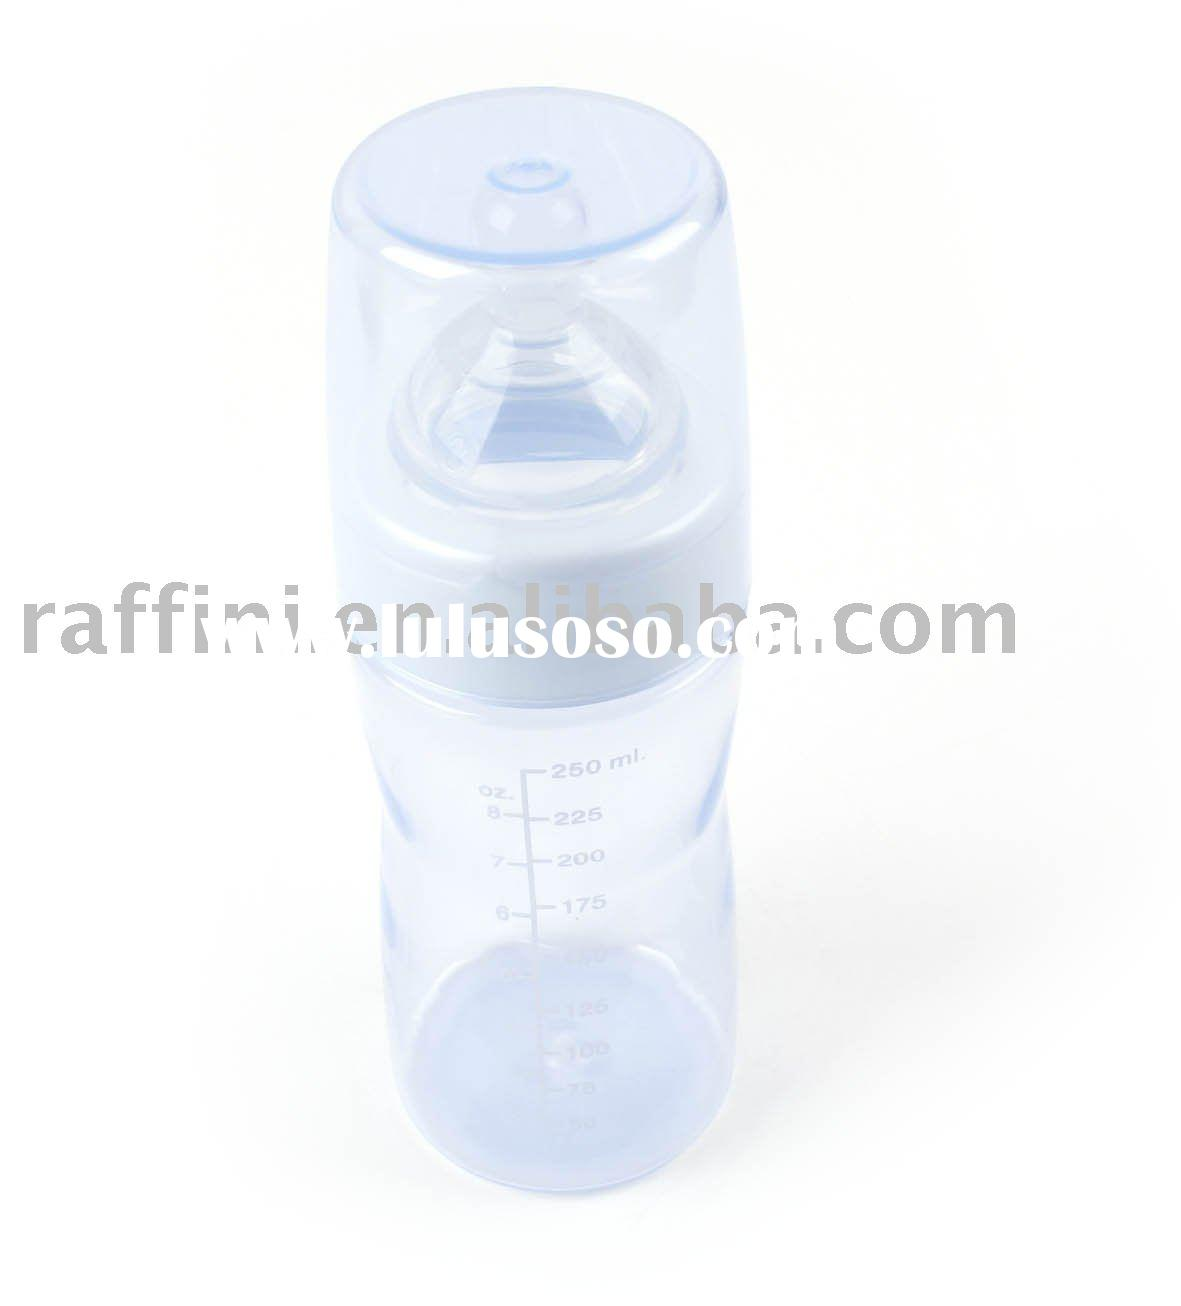 BPA free baby bottle, Baby products, Feeding bottle